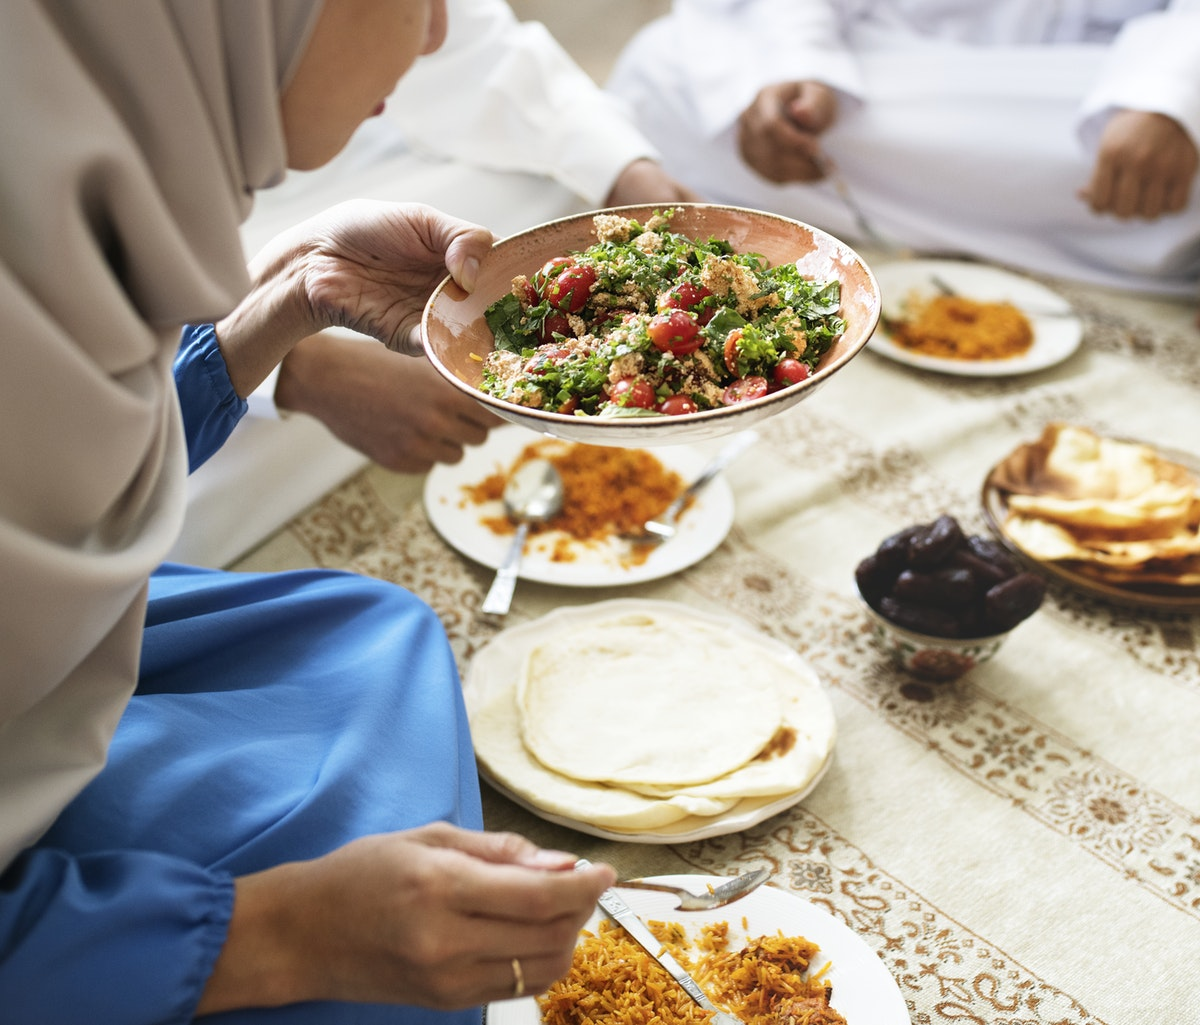 5 IDEAL DISHES TO TRY WHEN TRAVELLING TO THE UAE